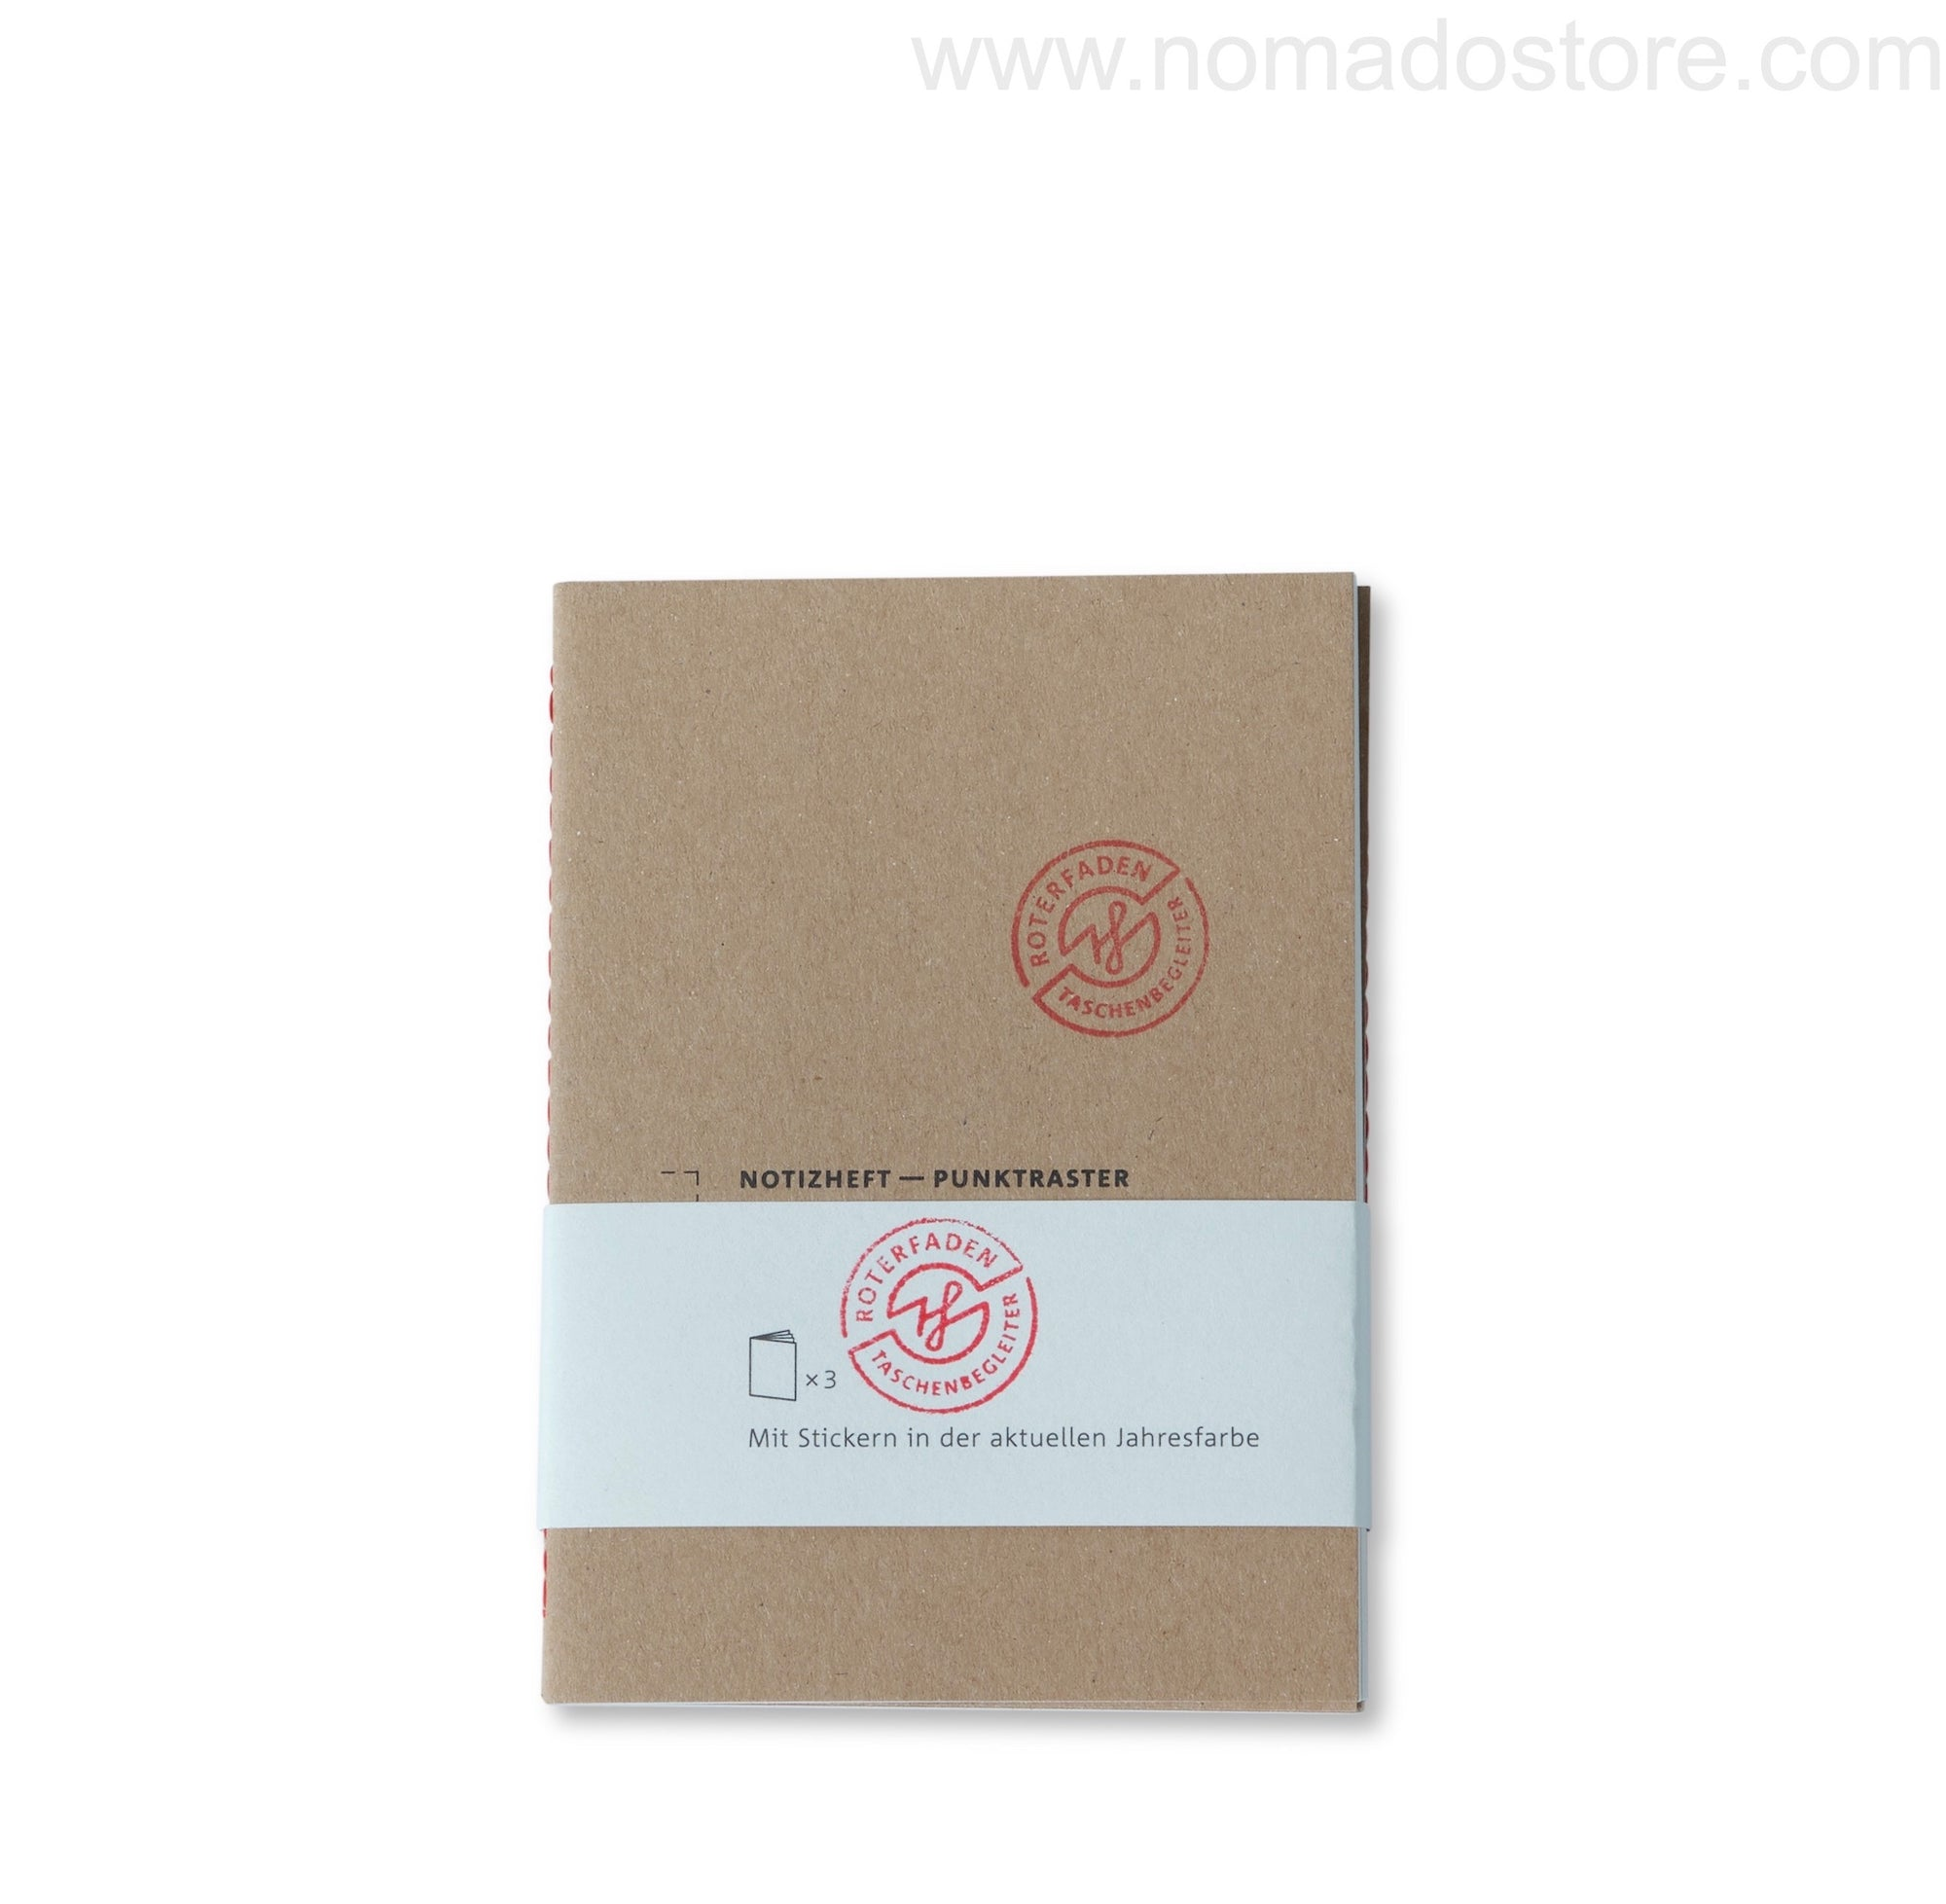 Roterfaden Smaller A6 Note Booklets -3-pack/dot grid (10x14cm) - NOMADO Store